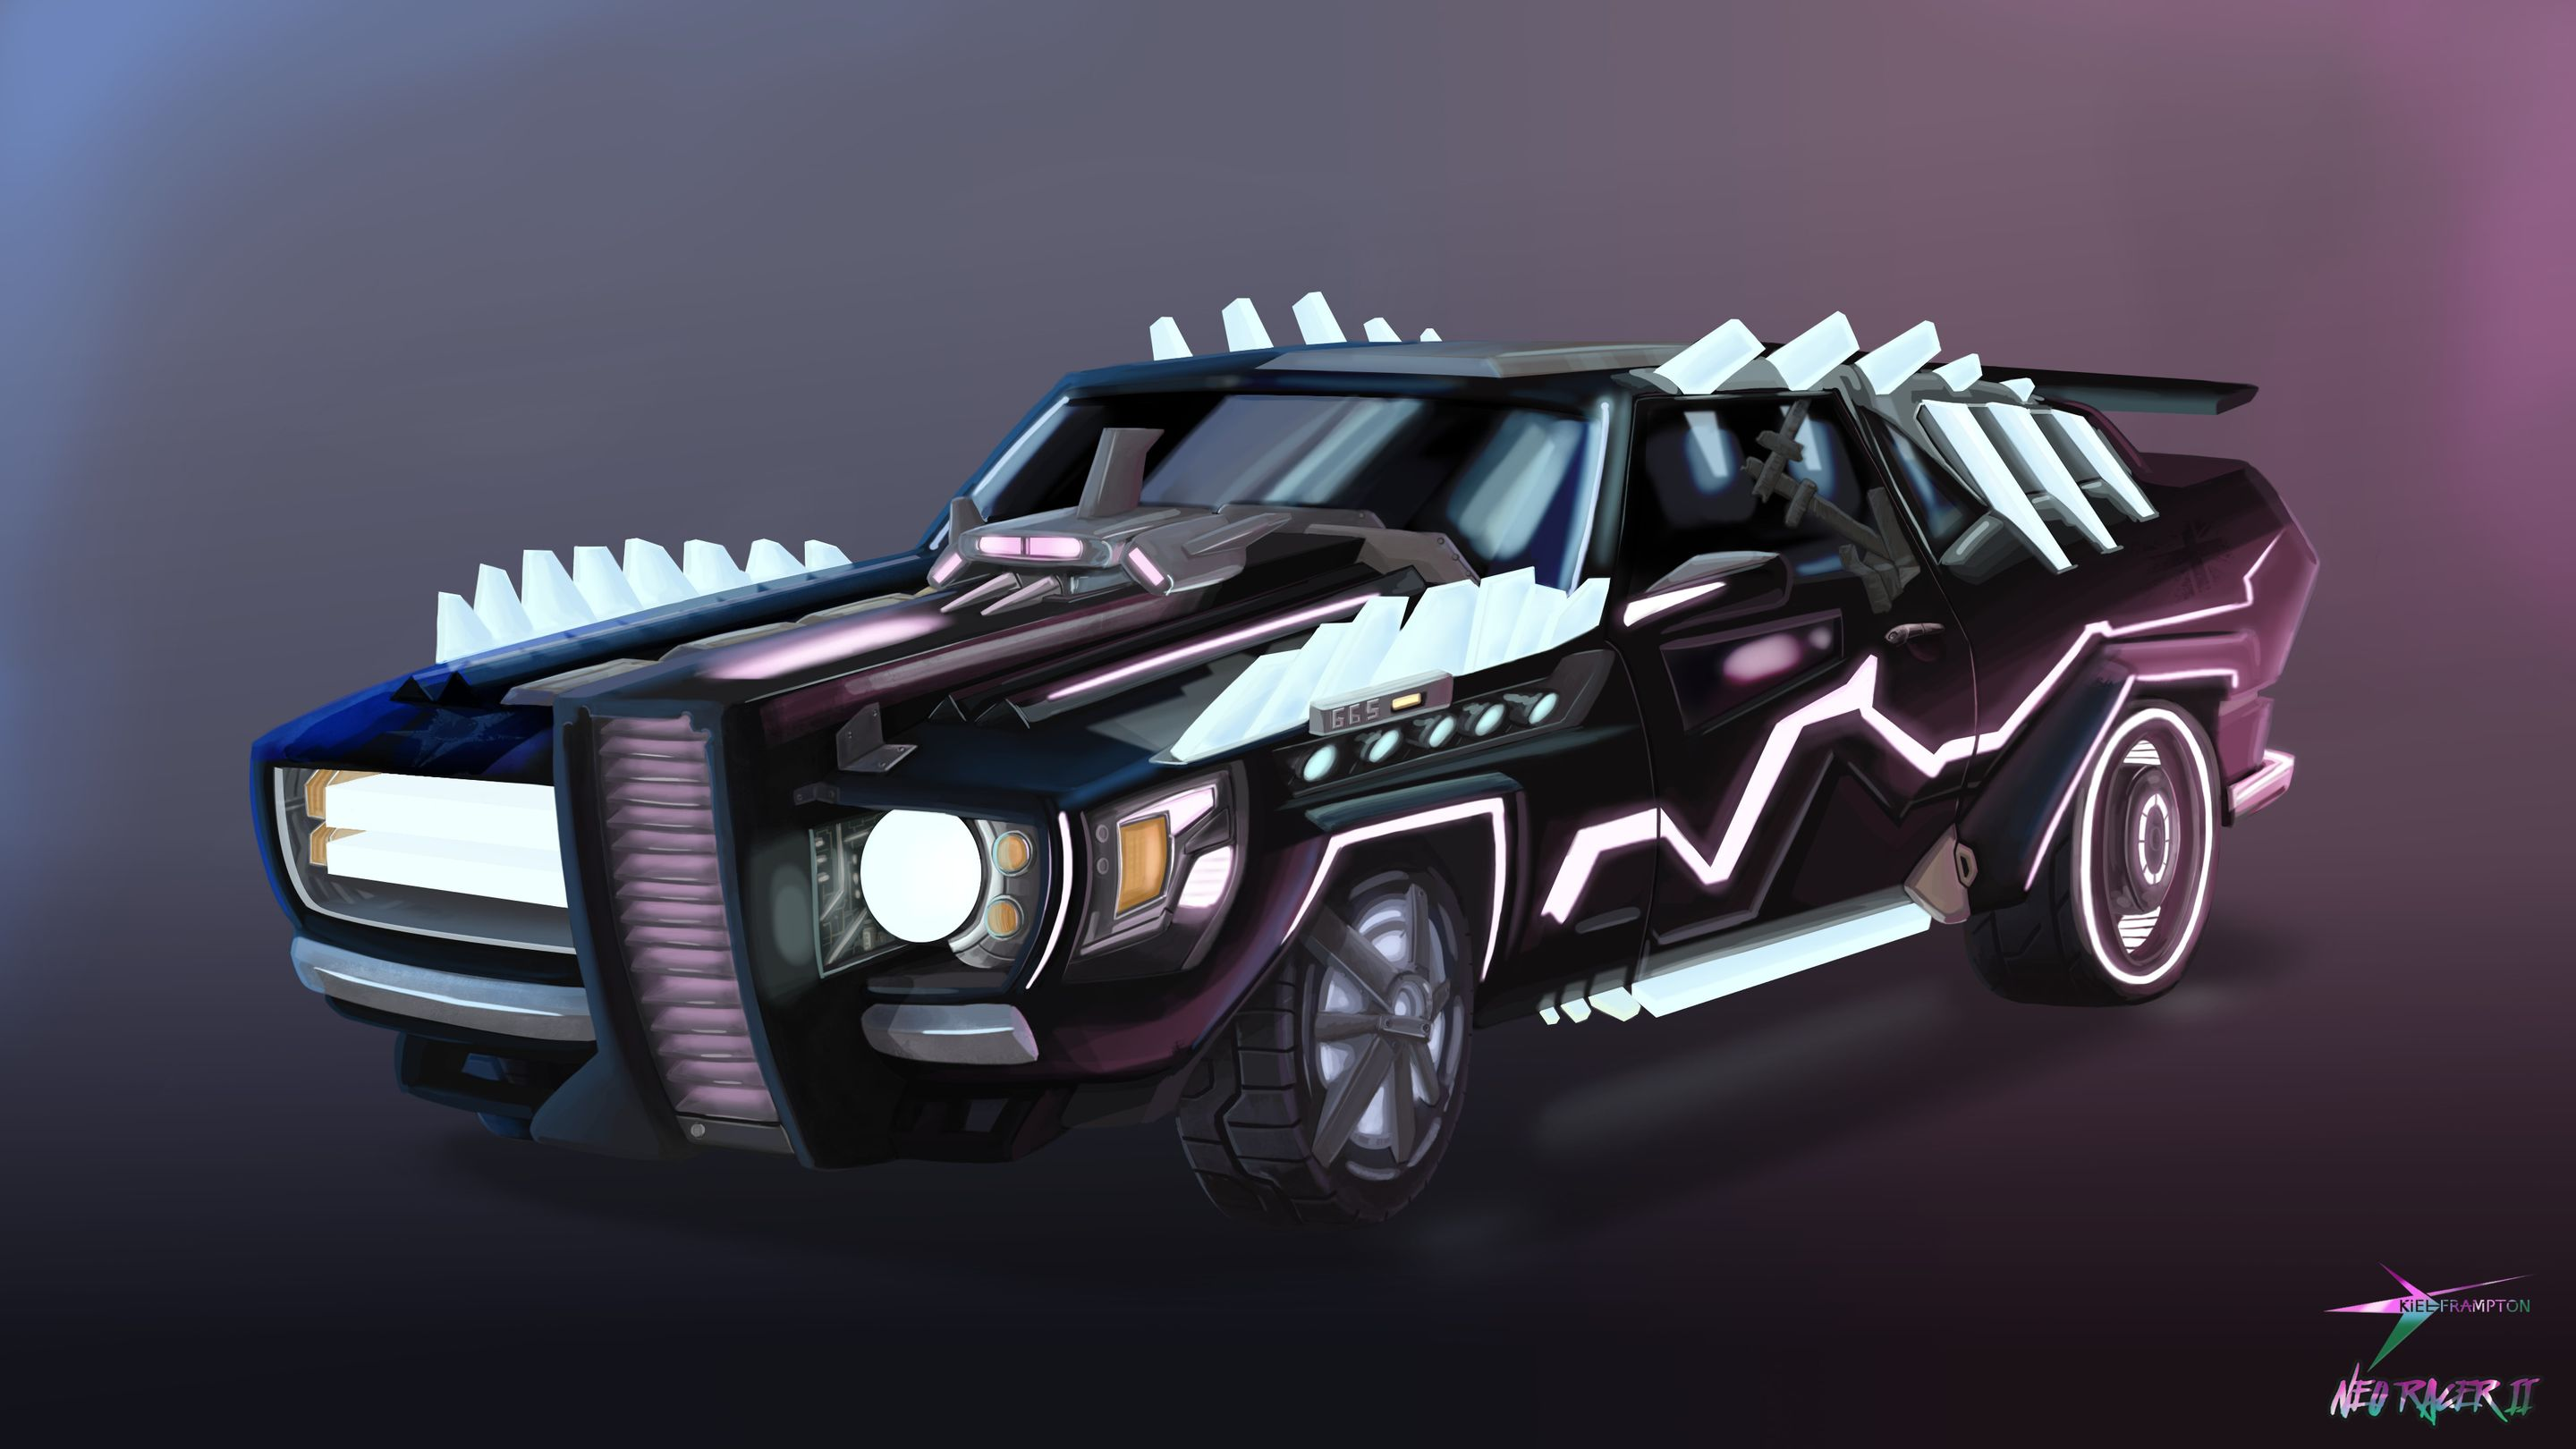 Neo Racer Vehicle